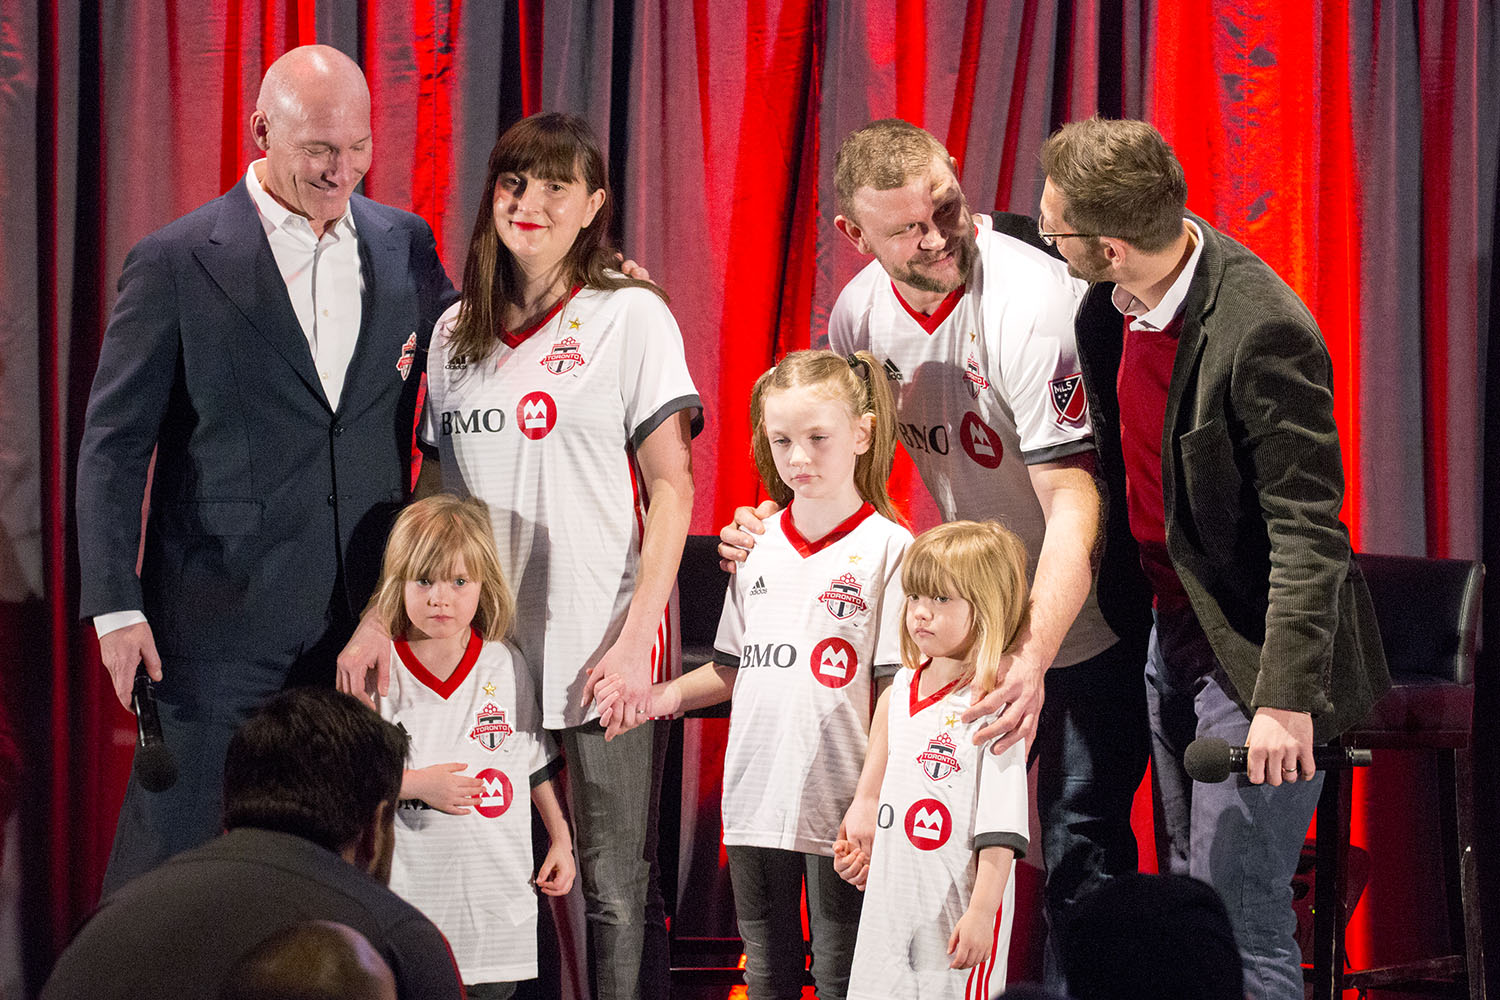 Tim Bezbatchenko and Bill Manning have a family of season ticket holders on the stage to model the new 2018 Toronto FC alternate jersey at Real Sports Bar and Grill in Toronto, Canada. Image by Dennis Marciniak of denMAR Media.